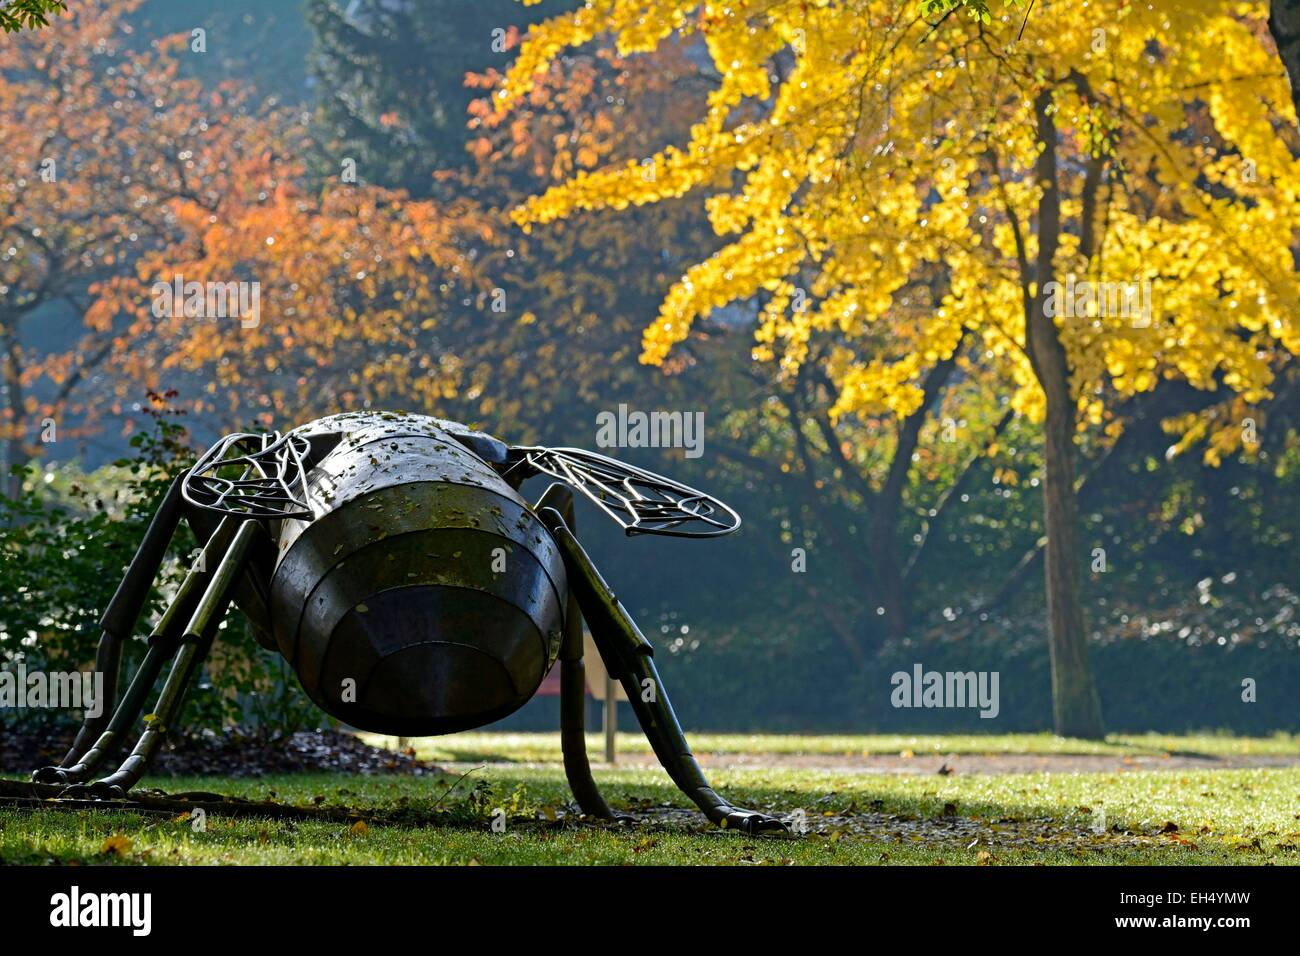 France, Doubs, Montbeliard, bee, metal work in the urban park near the Rose IN fall near the city center - Stock Image